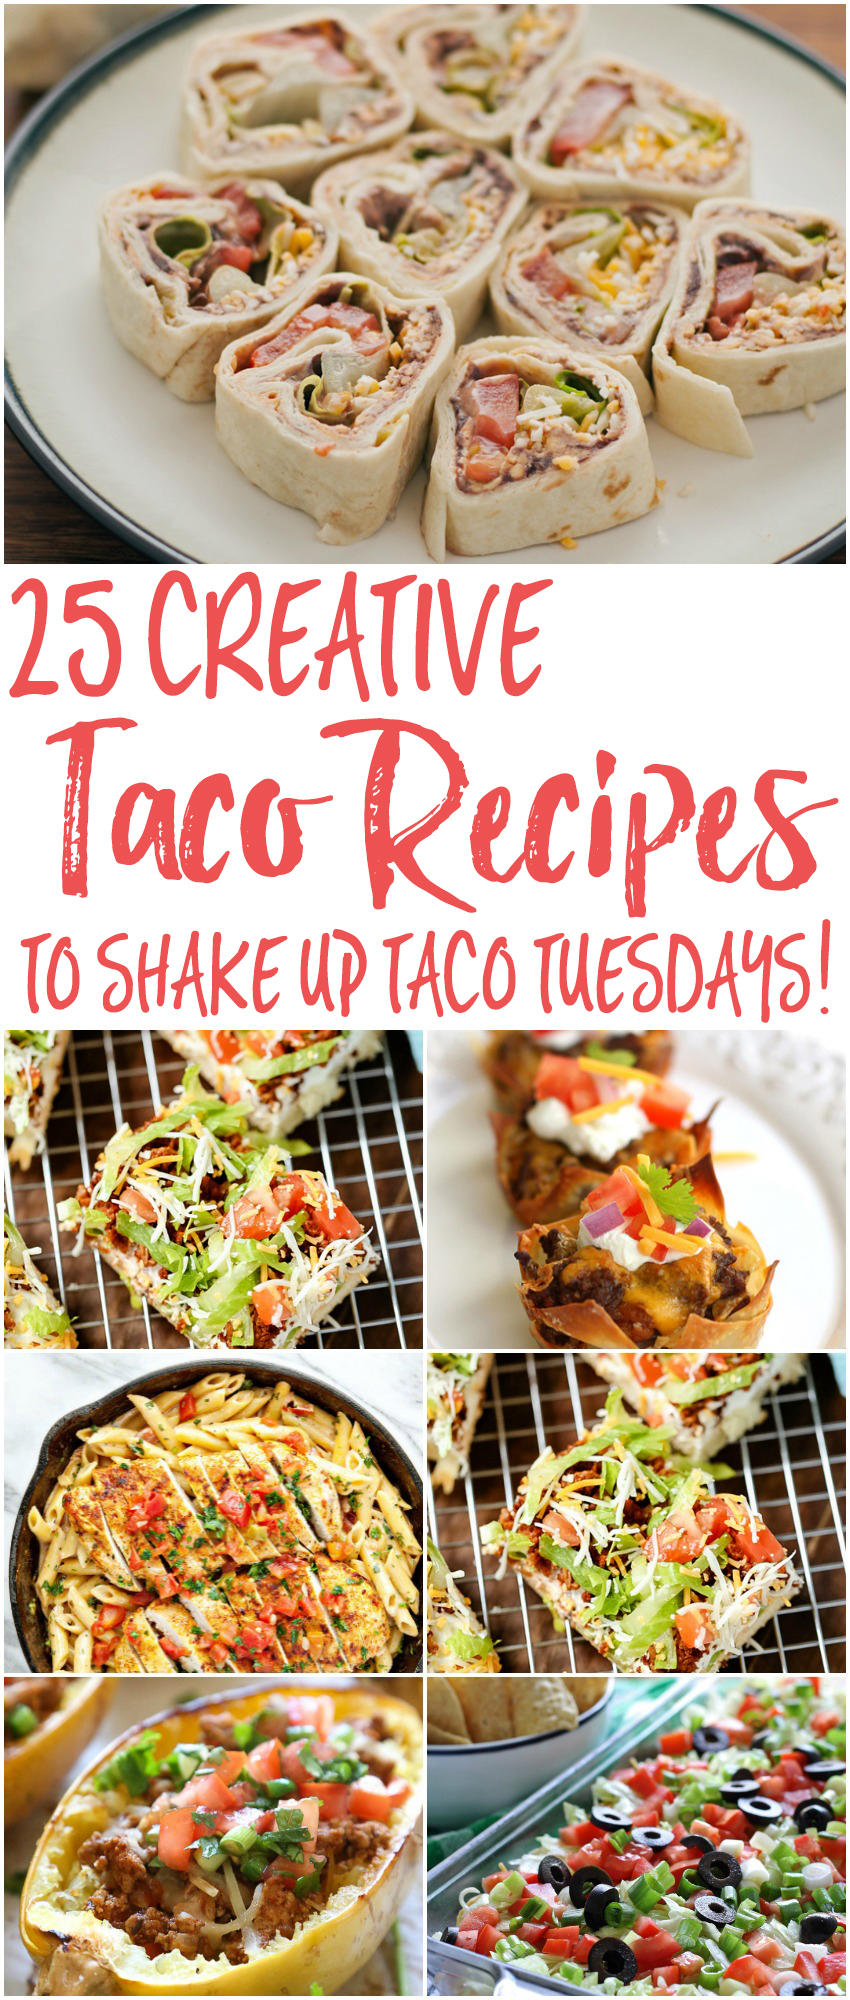 25 Creative Taco Recipes to Shake Up Taco Tuesday!